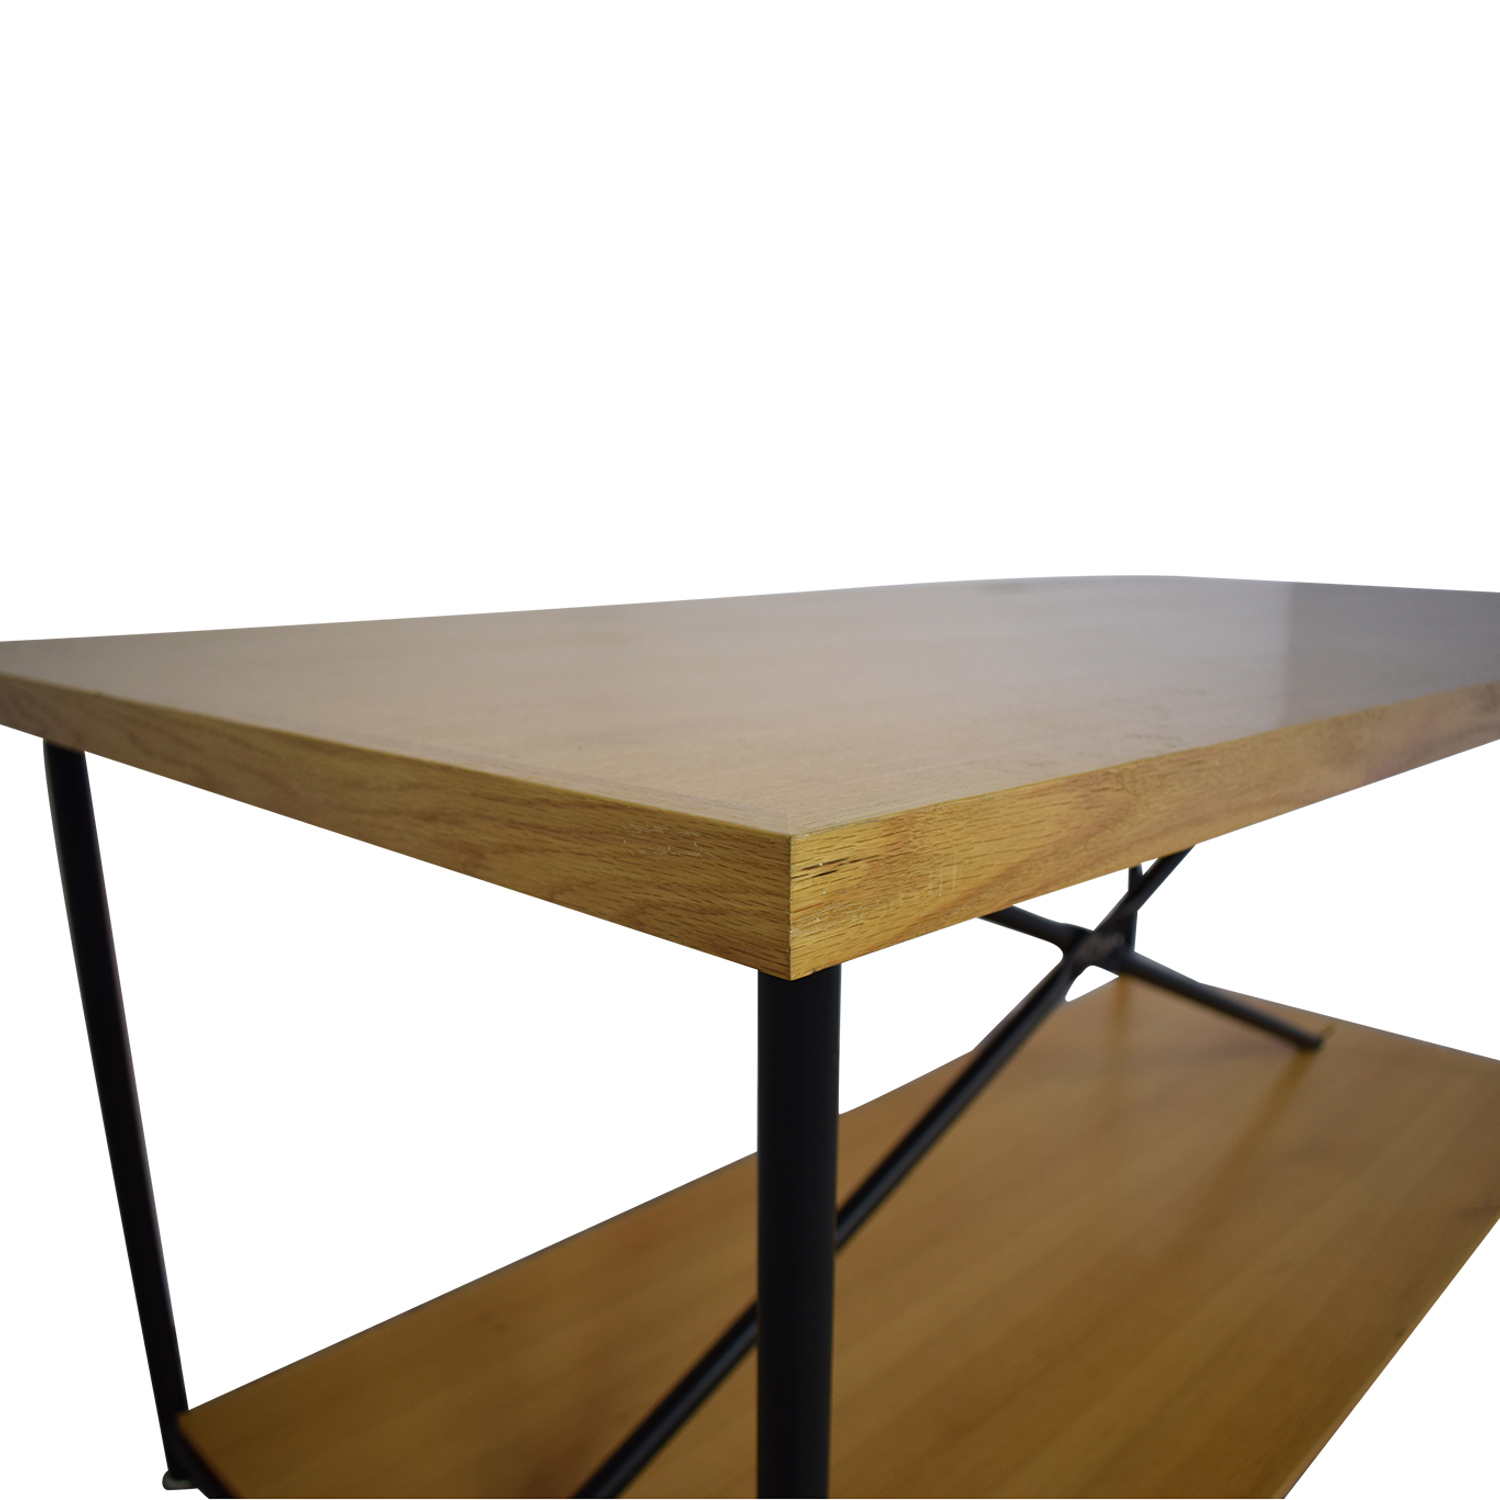 Wooden Work Table with Wheels for sale